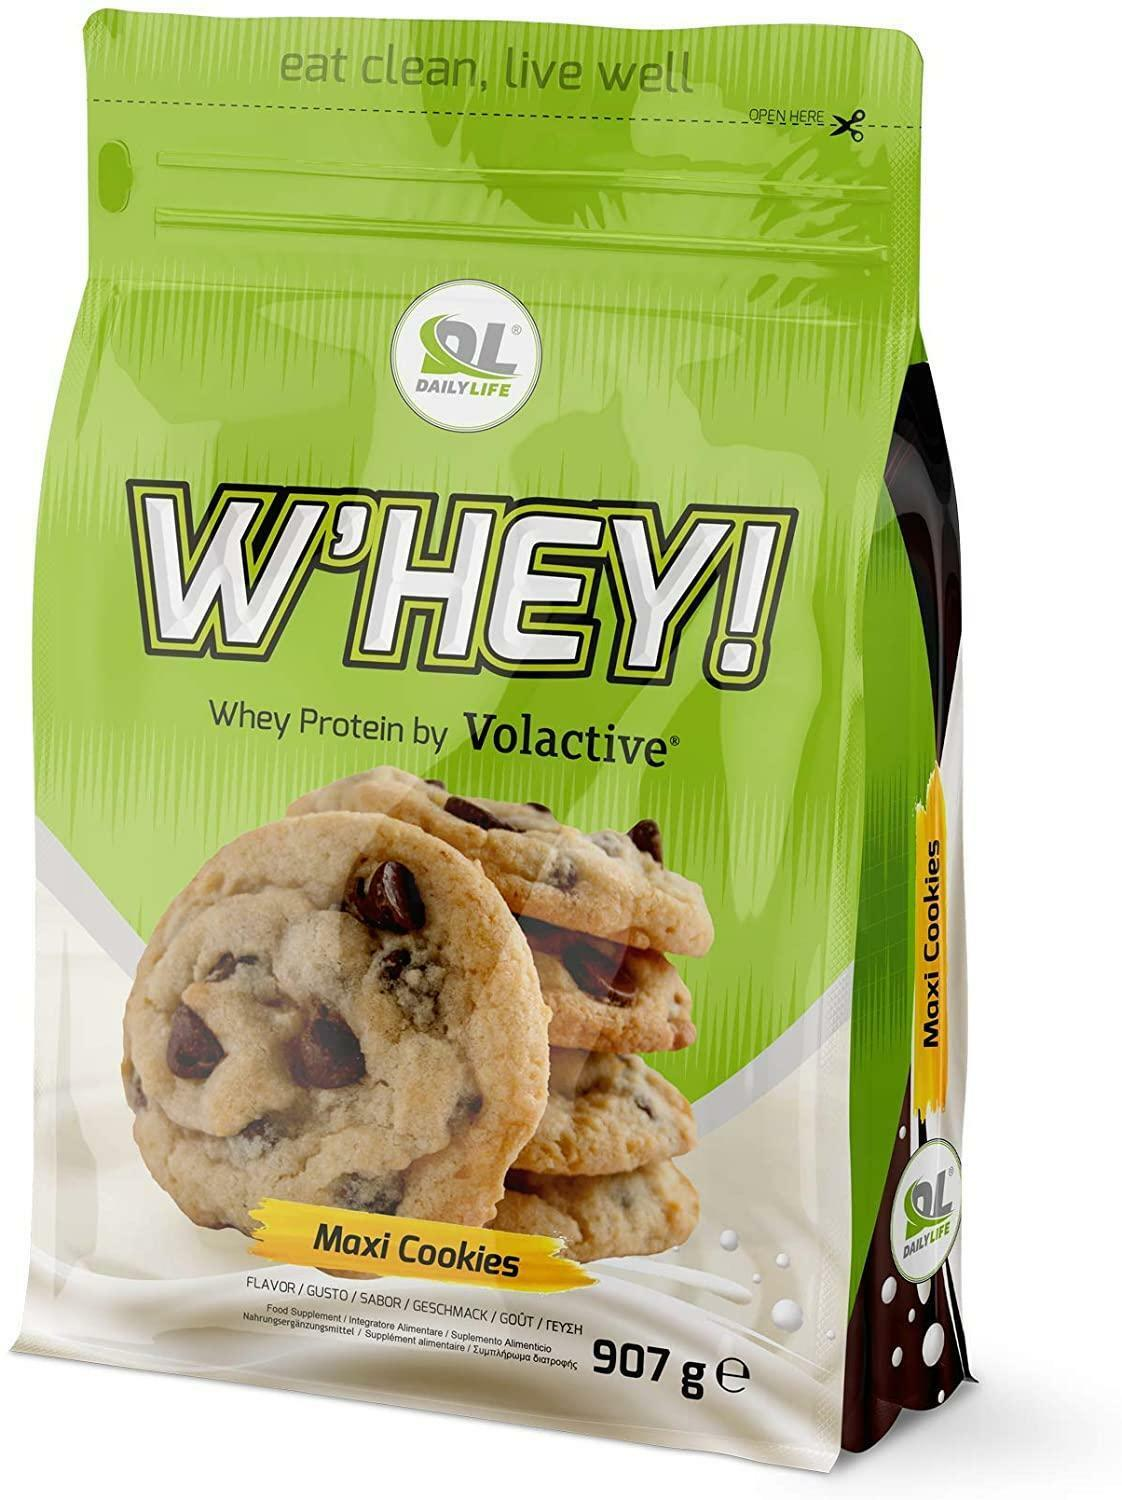 daily life w'hey! - proteine whey volactive® gusto cookies - 907g